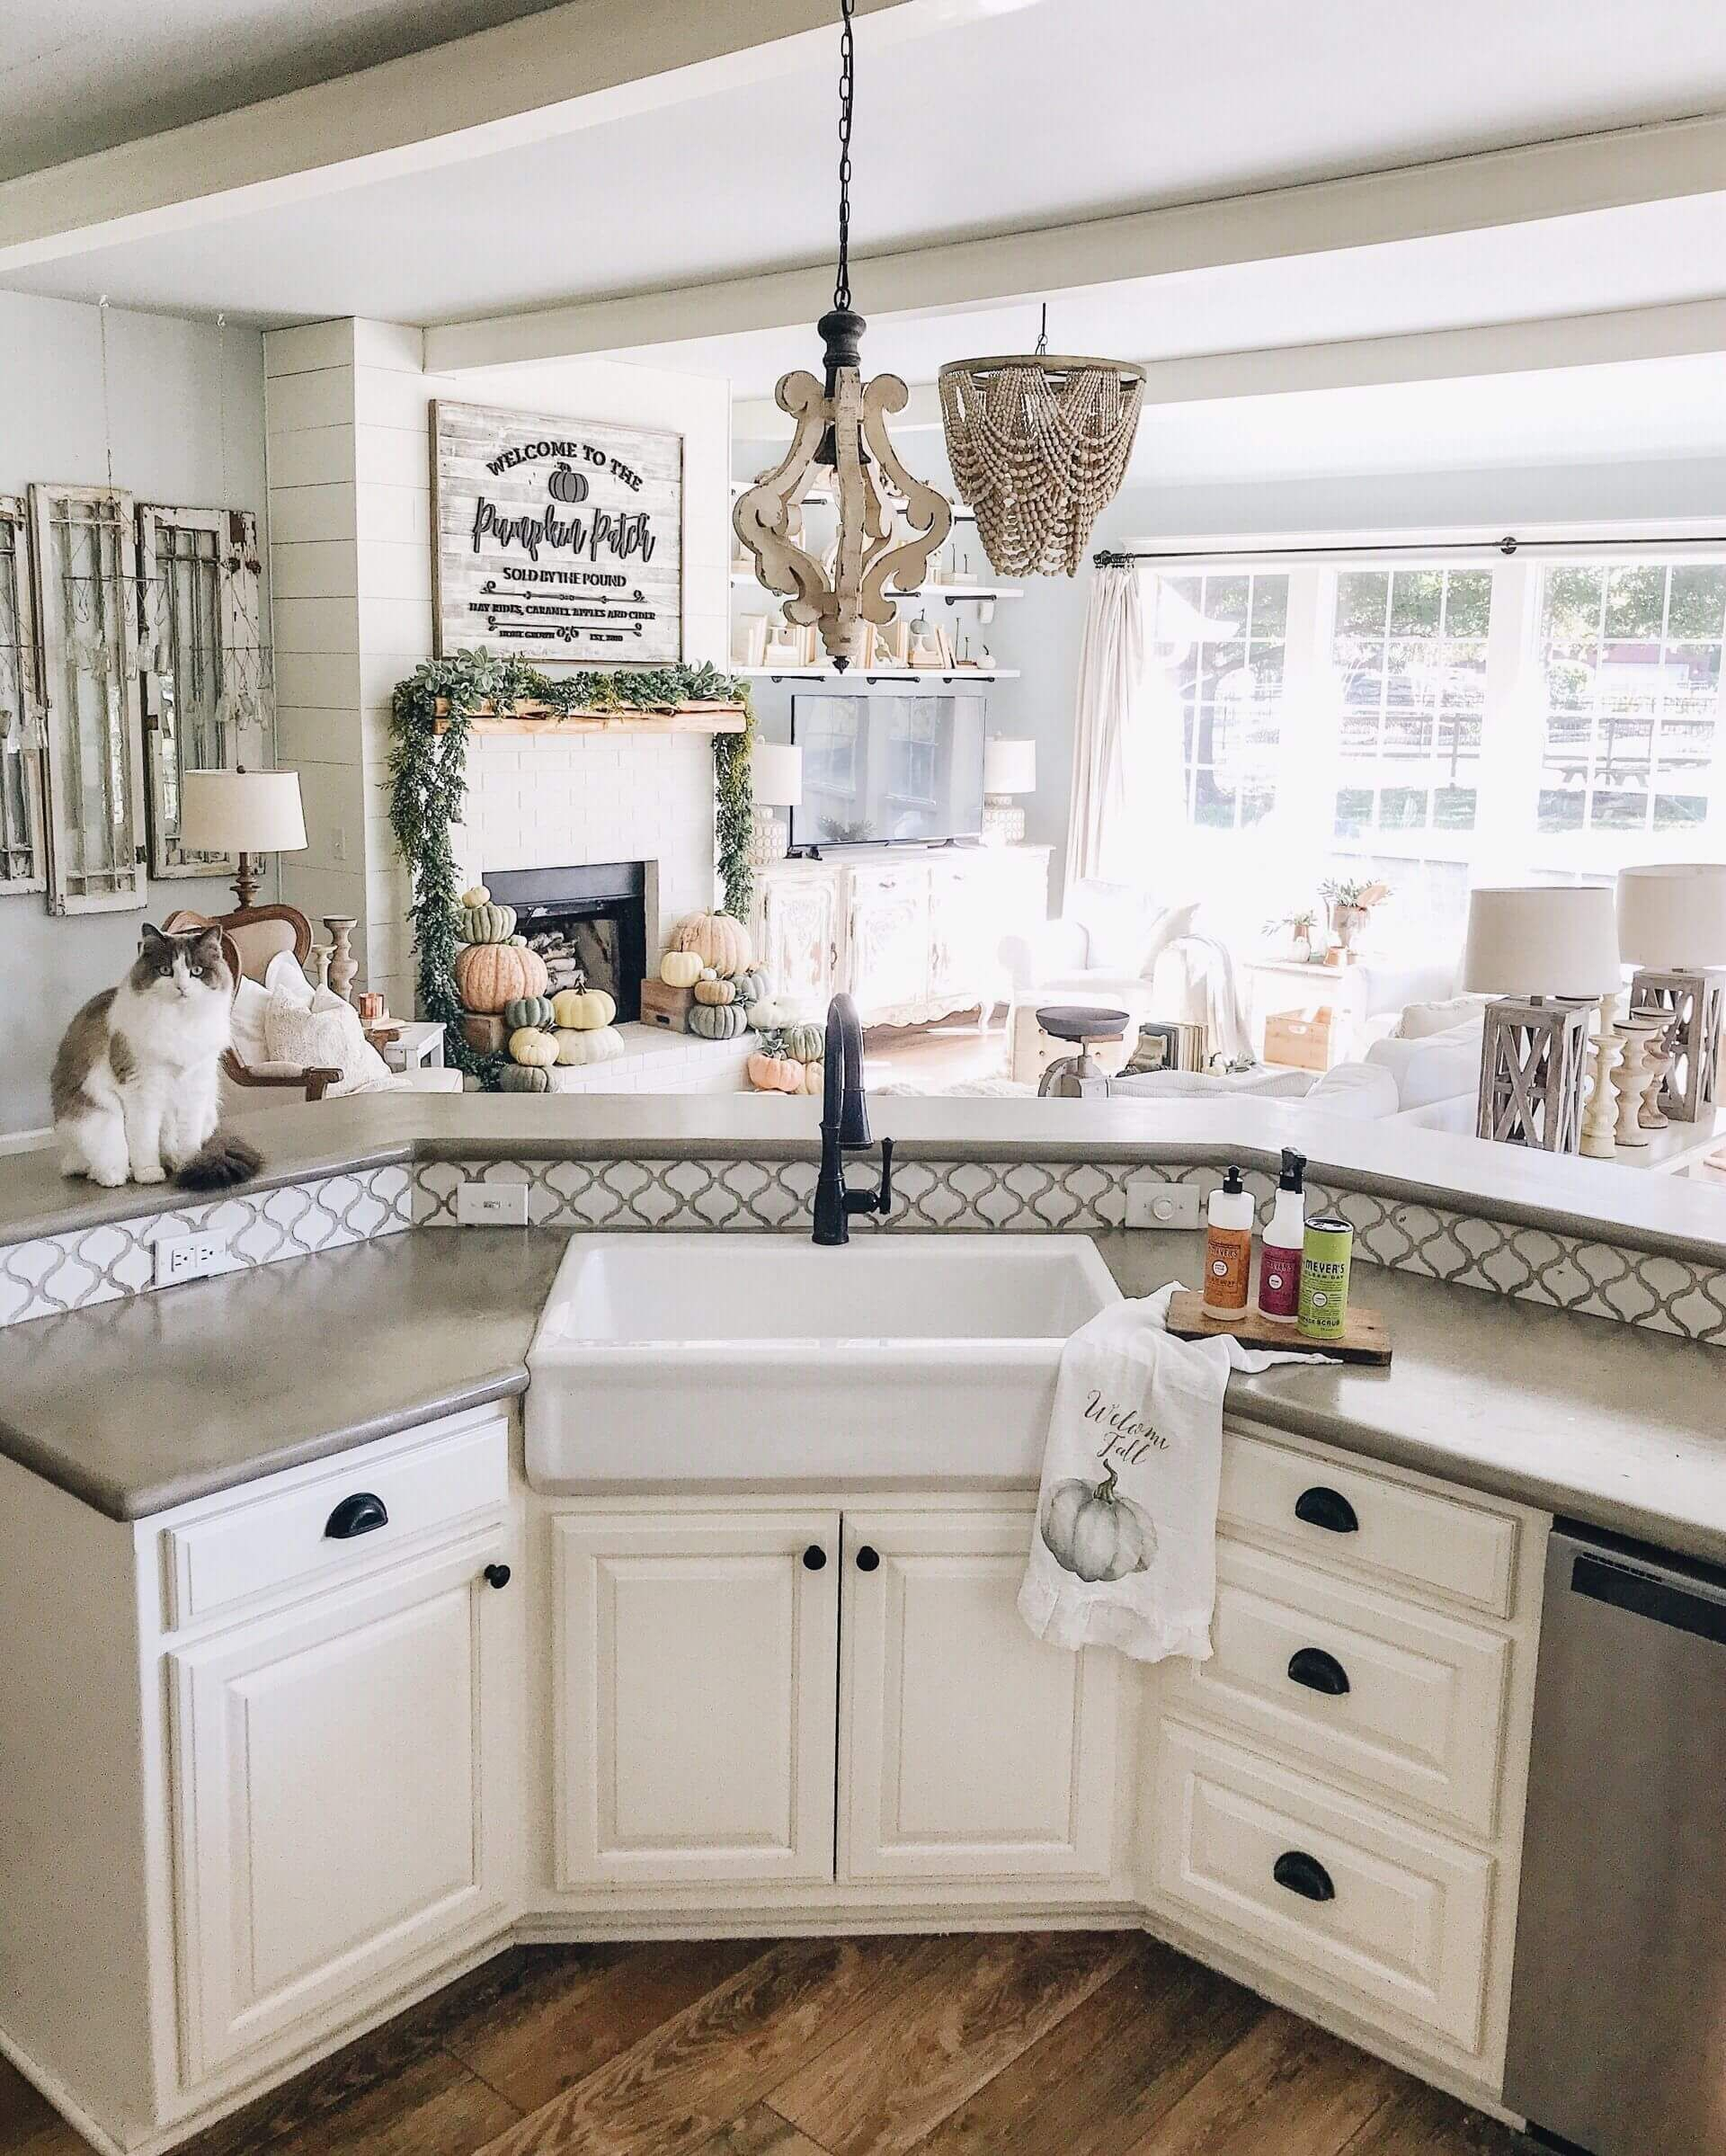 Farmhouse Sink In The Island Corner Corner Farmhouse Island Sink Farmhouse Sink Kitchen Kitchen Island With Sink Corner Sink Kitchen